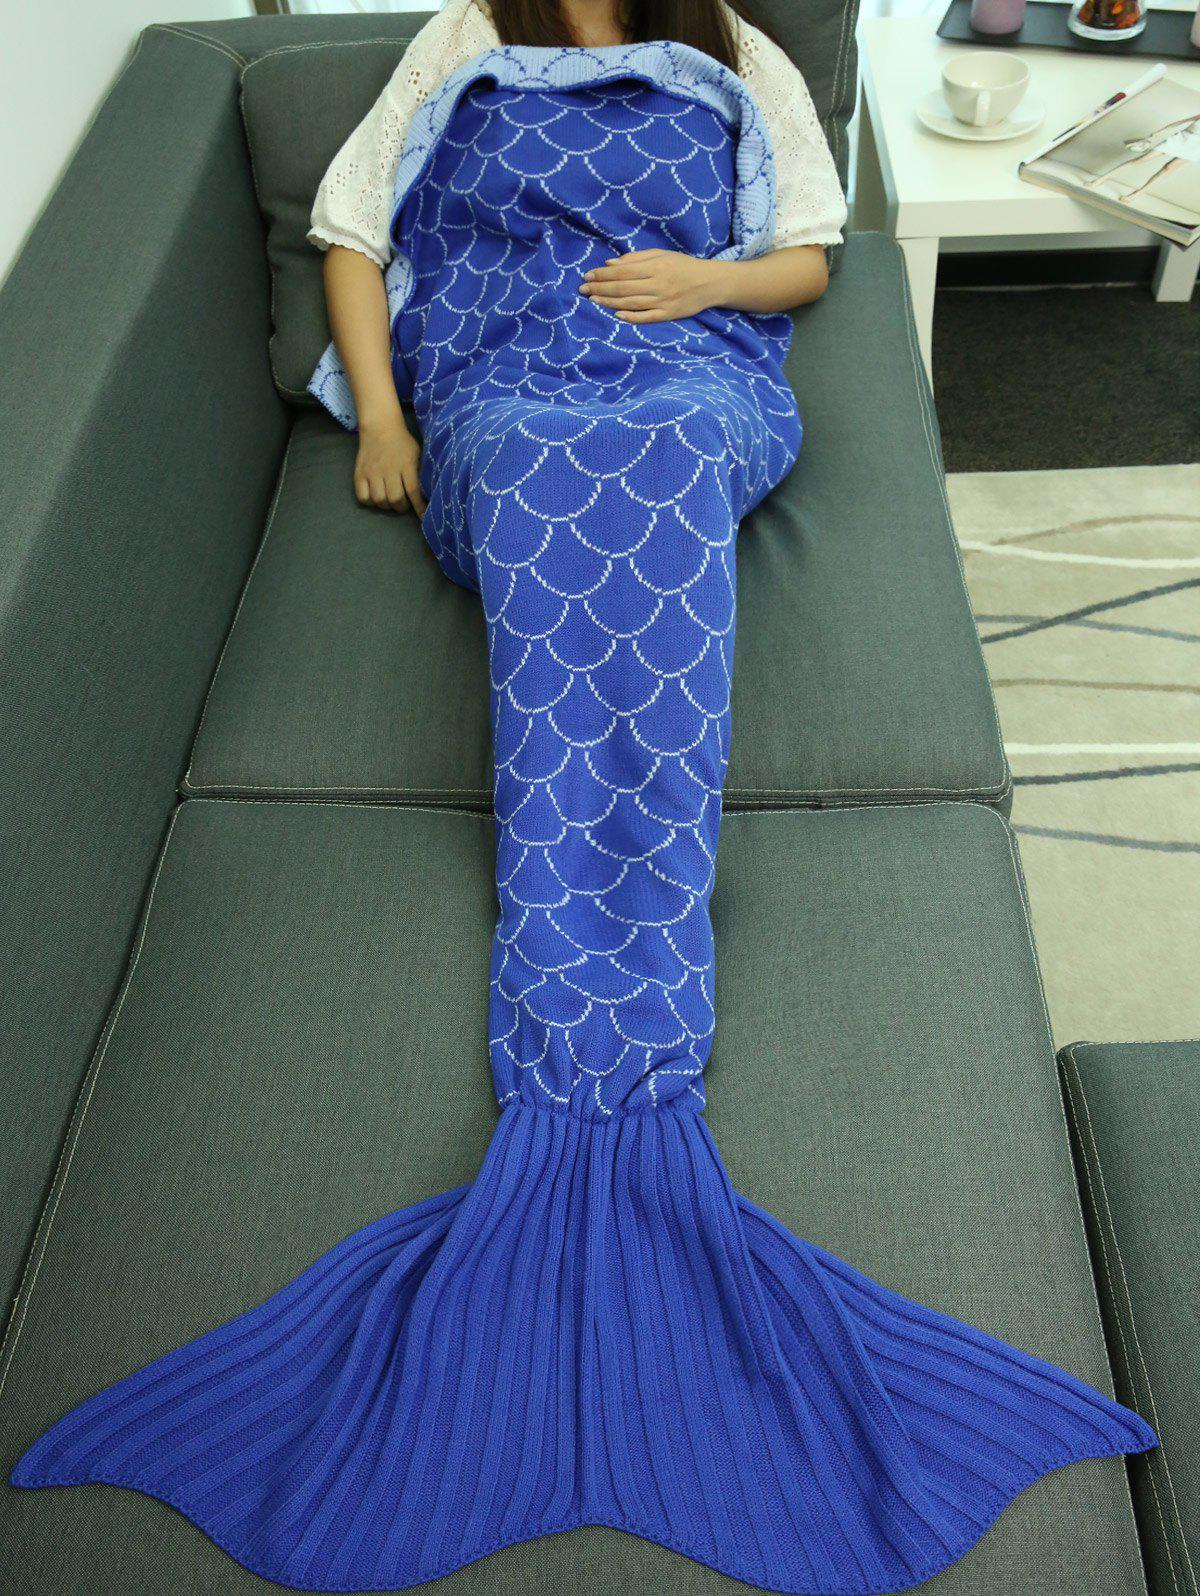 Unique Fish Scale Design Sleeping Bag Wrap Mermaid Blanket